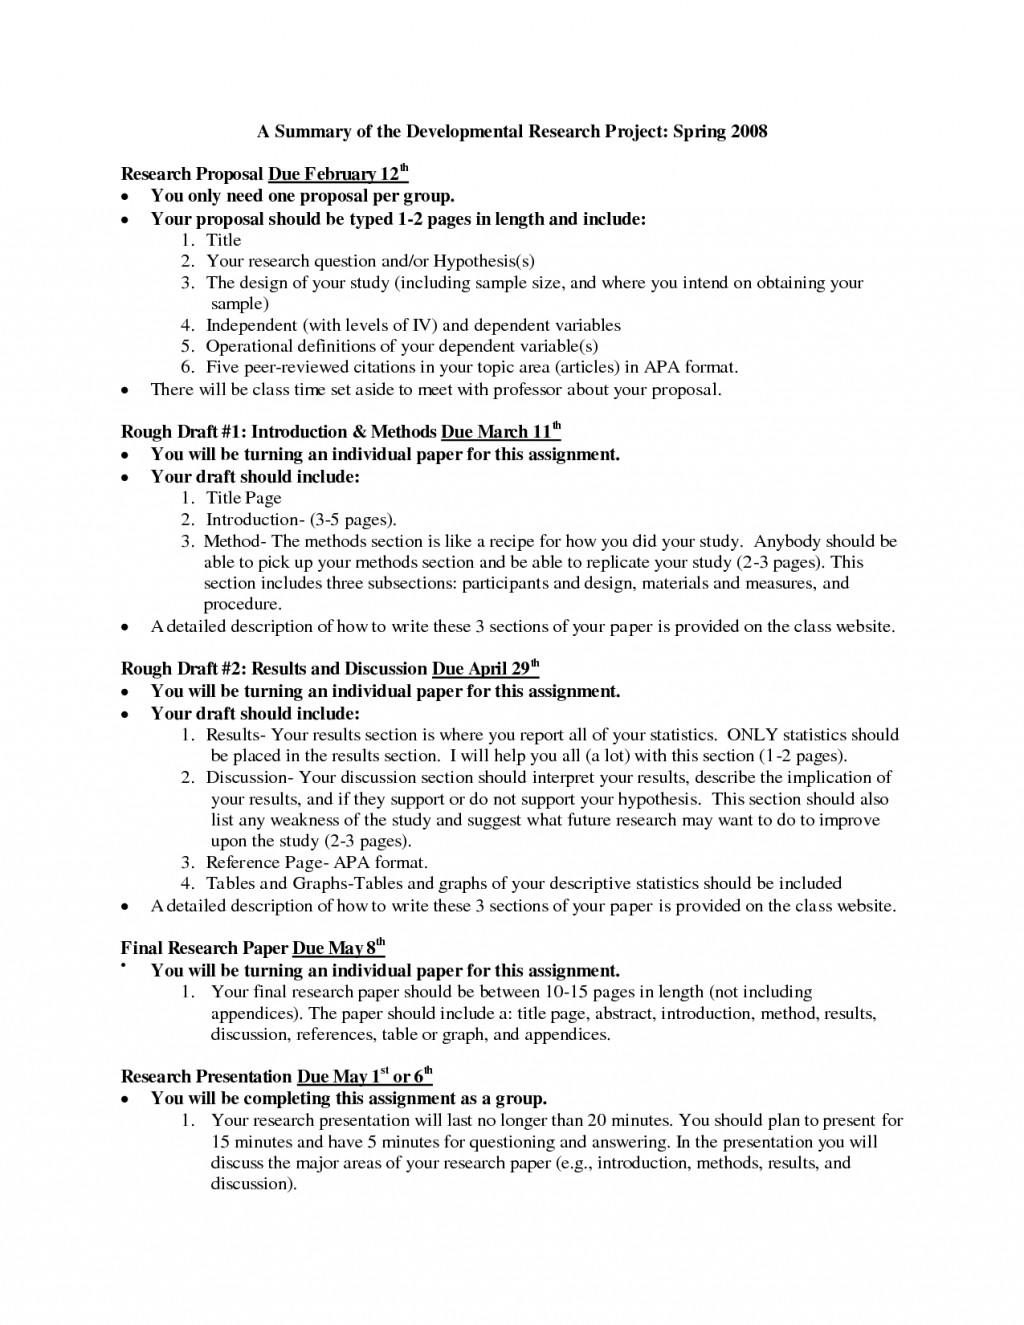 007 Topics To Write Researchs On Psychology Undergraduate Resume Unique Sample Of Magnificent Research Papers Good An Argumentative Paper Your A History Large